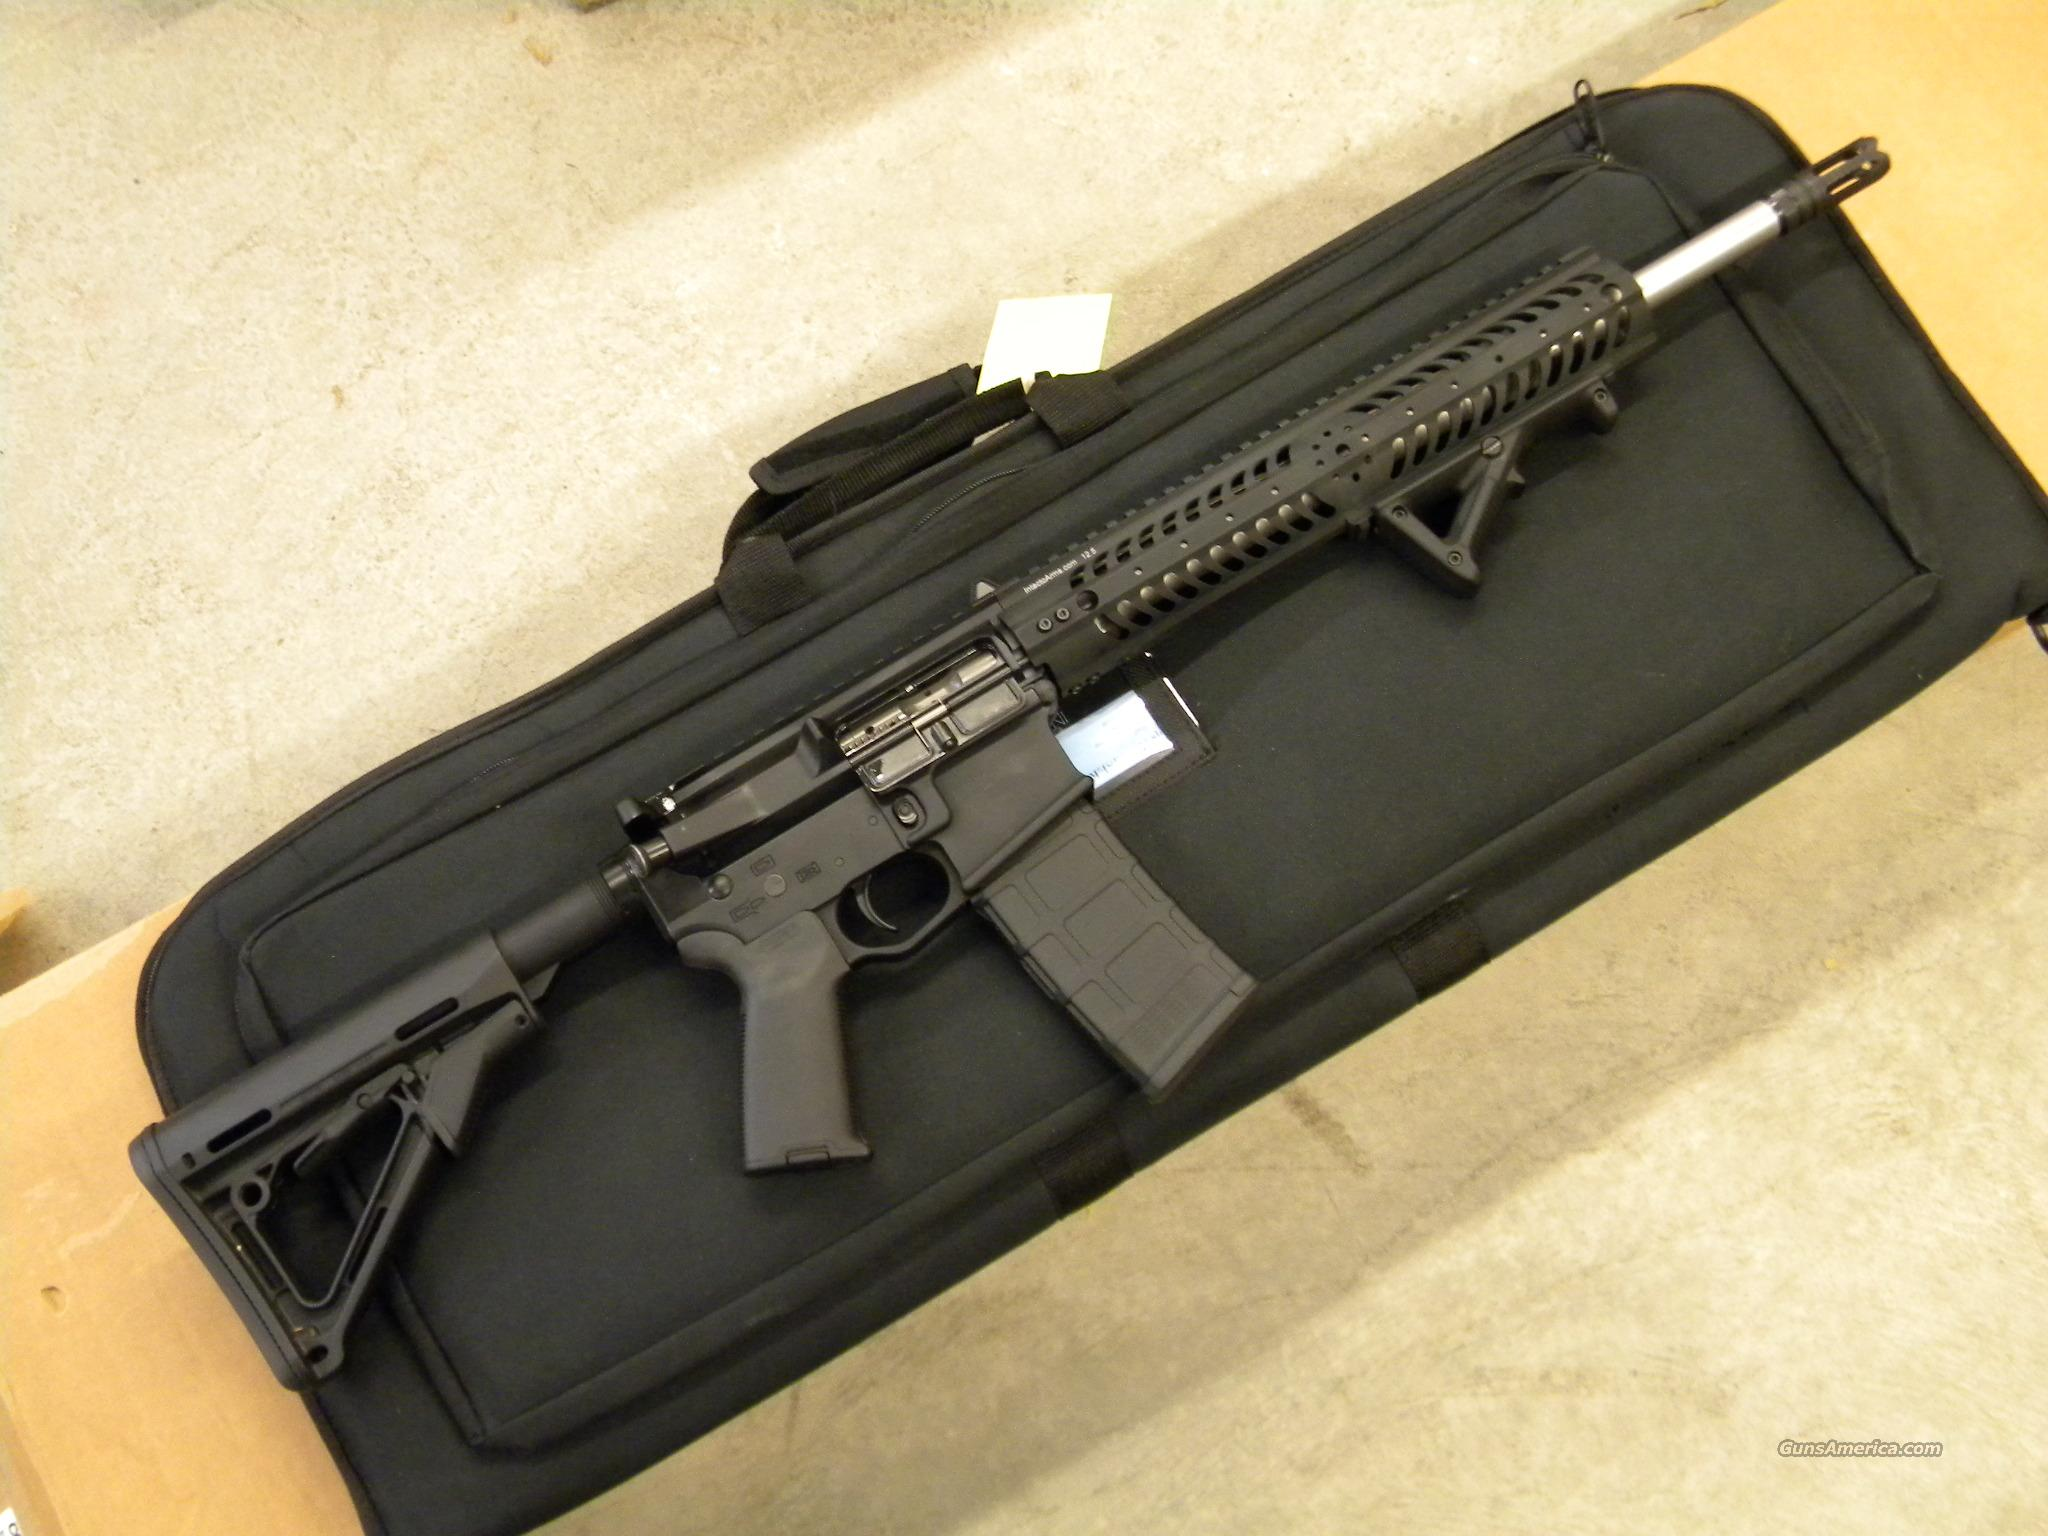 Intacto Arms .223/5.56 Battle Tactical AR-15  Guns > Rifles > AR-15 Rifles - Small Manufacturers > Complete Rifle